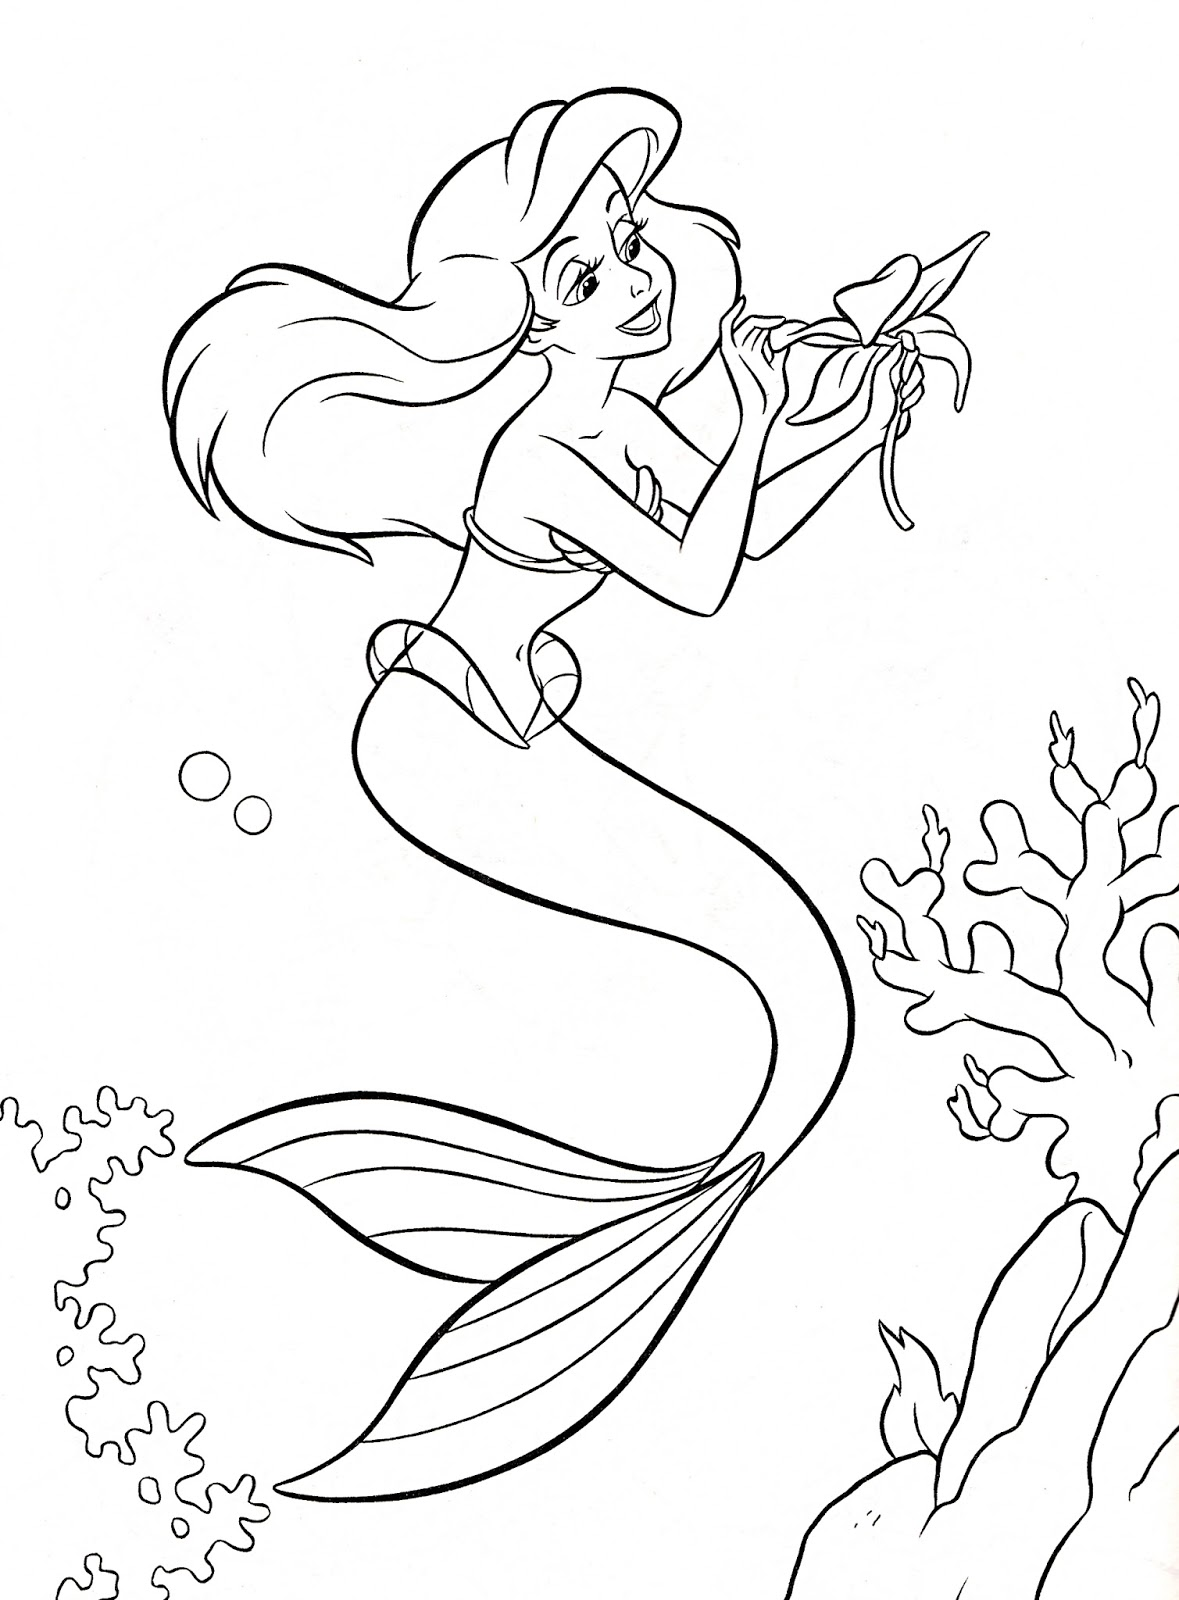 Under The Ocean Drawing at GetDrawings.com | Free for personal use ...